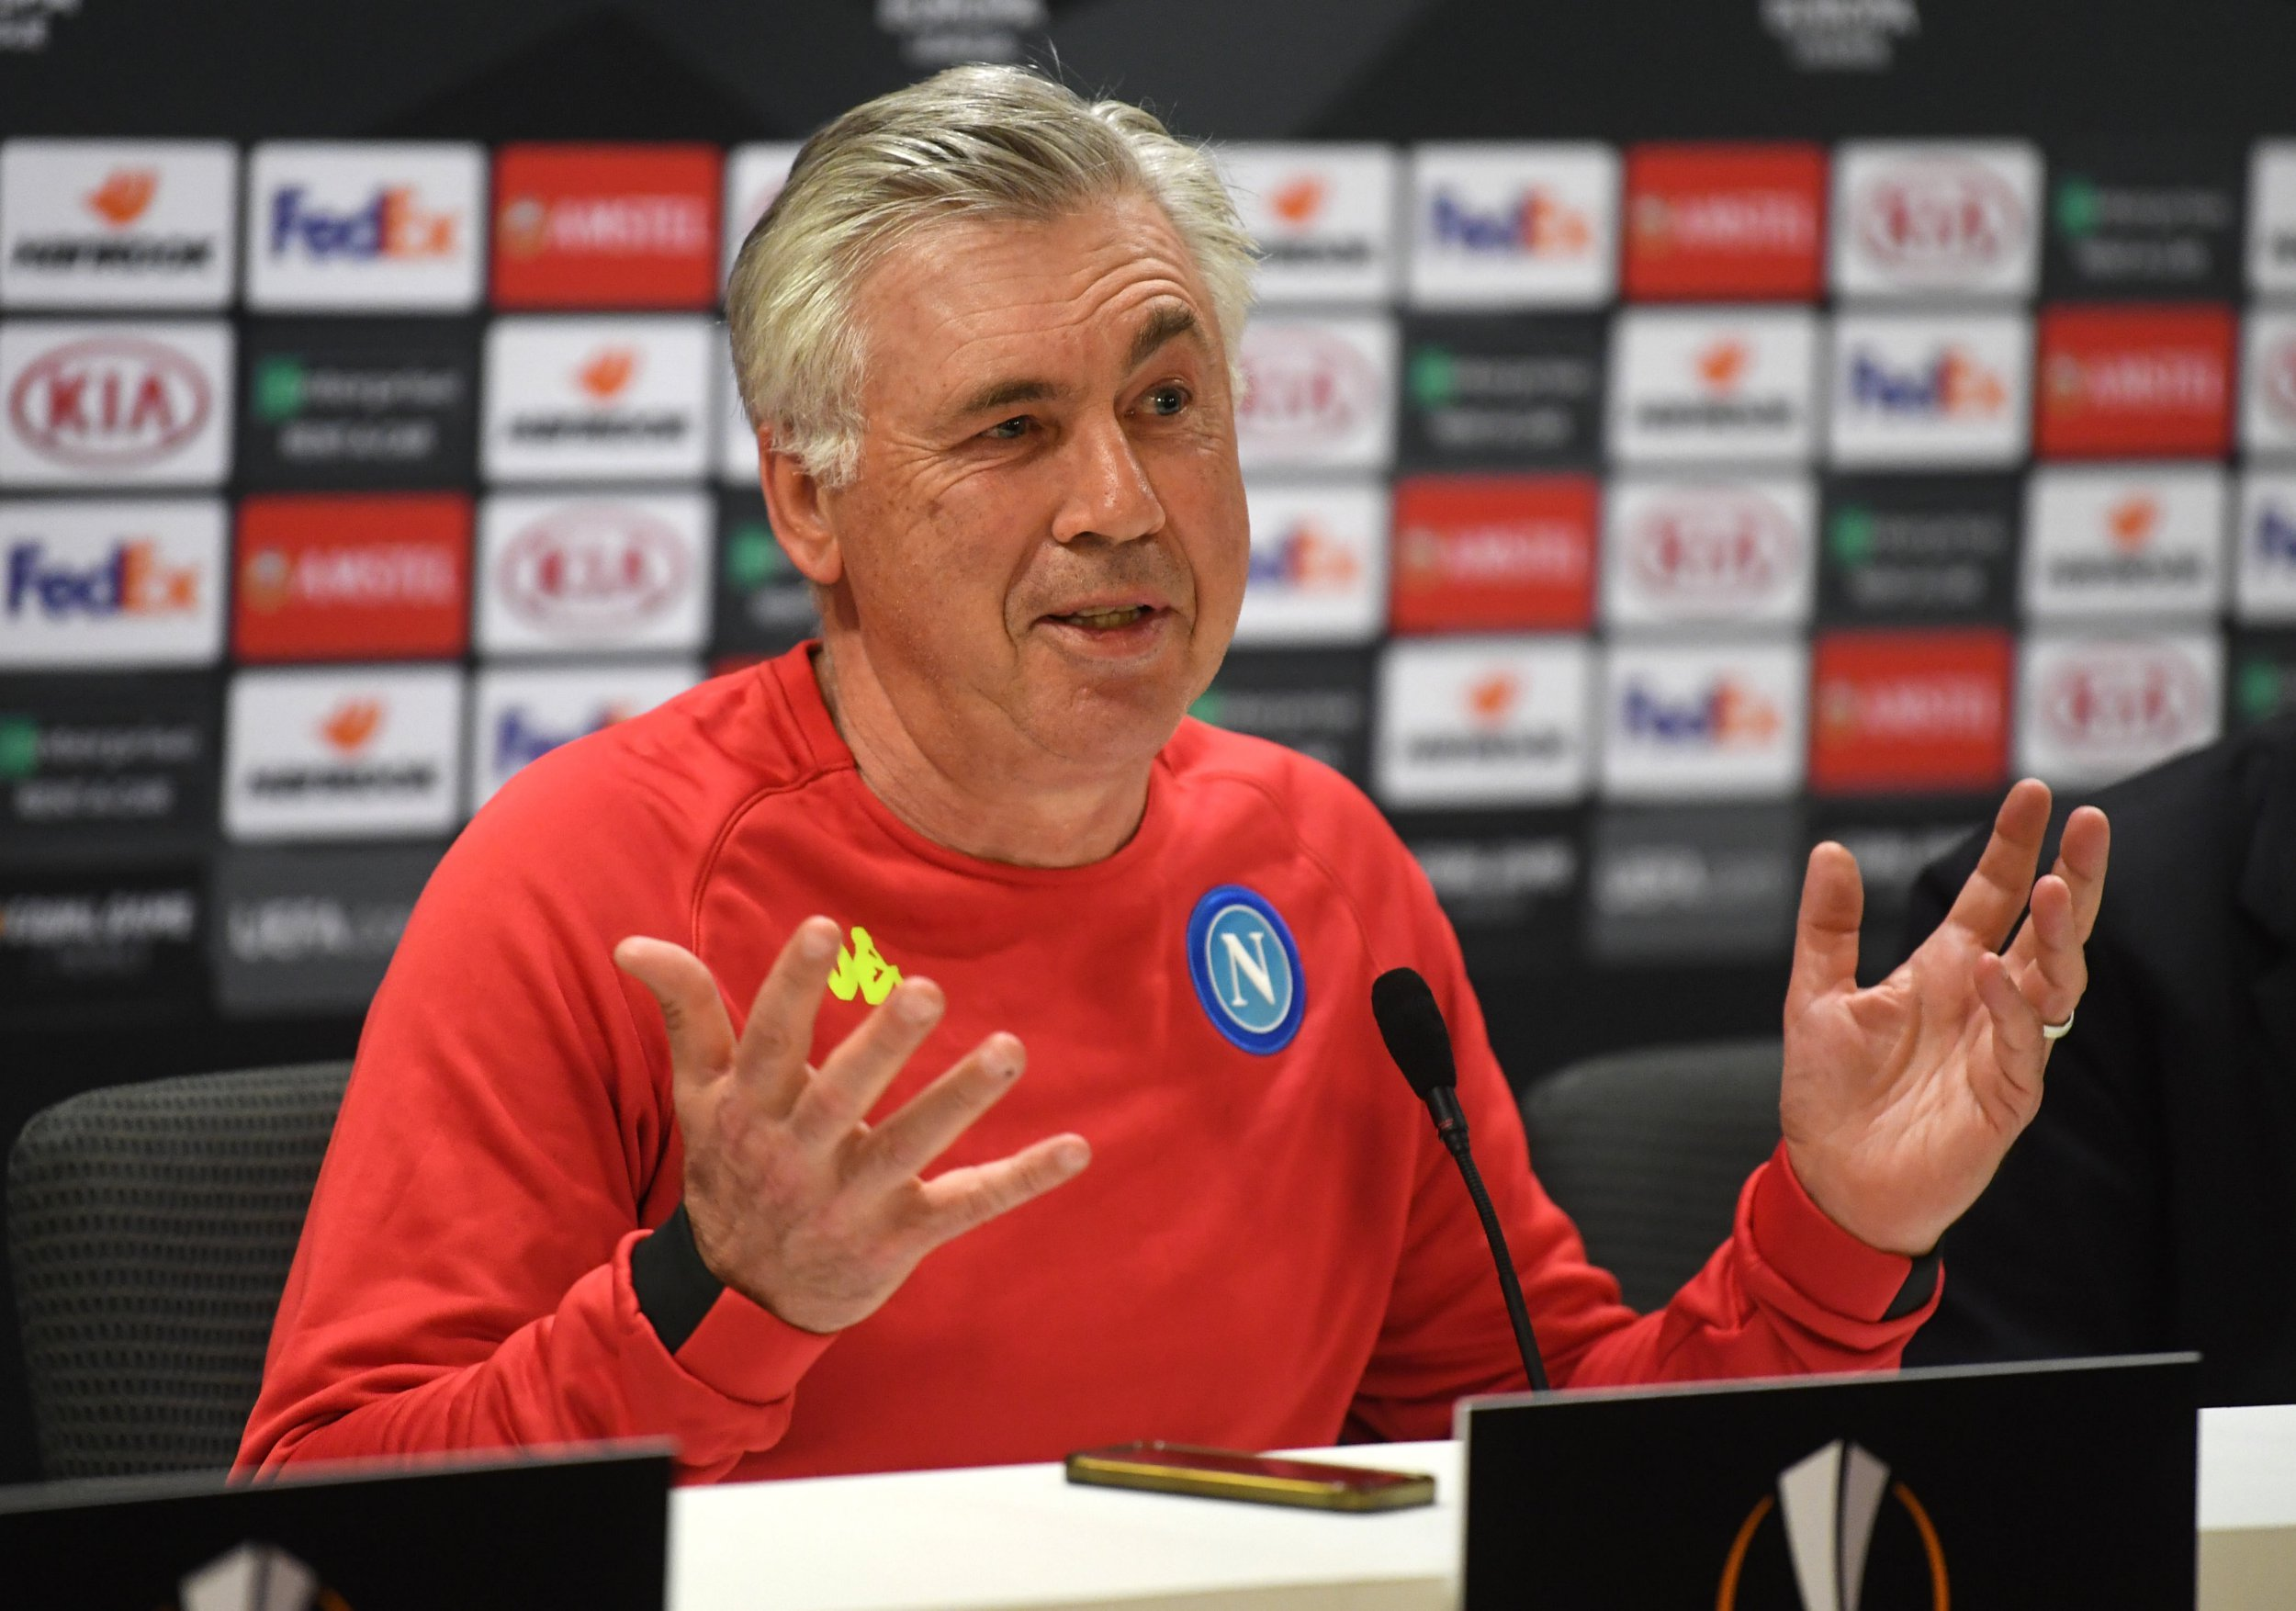 Carlo Ancelotti told Arsenal he wanted to succeed Arsene Wenger